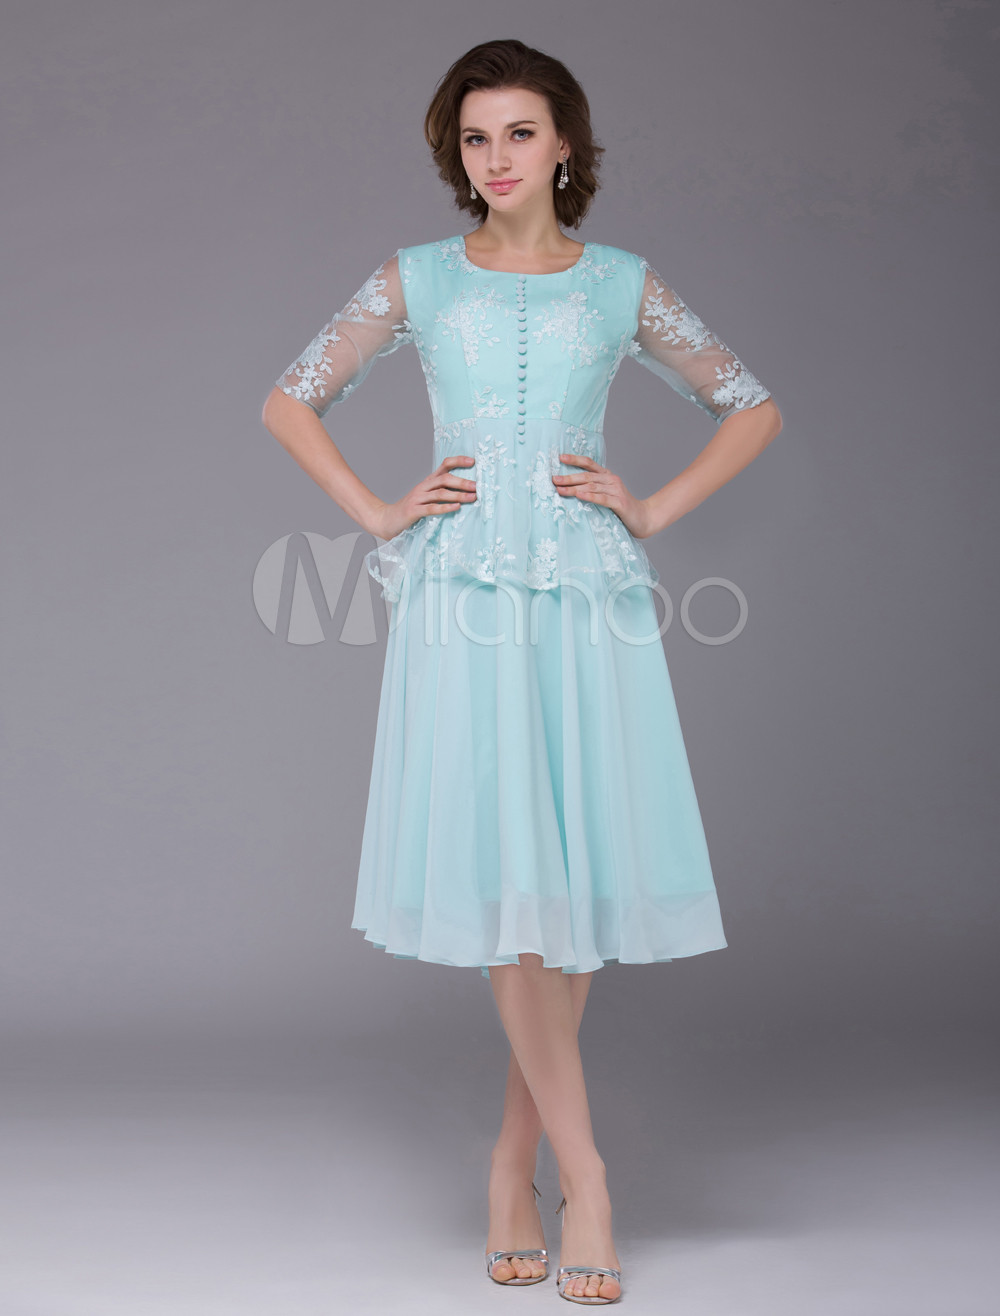 Buy Chiffon Prom Dress Mint Green Round Neck Party Dress Lace Half Sleeve Front Button Cocktail Dress for $121.99 in Milanoo store